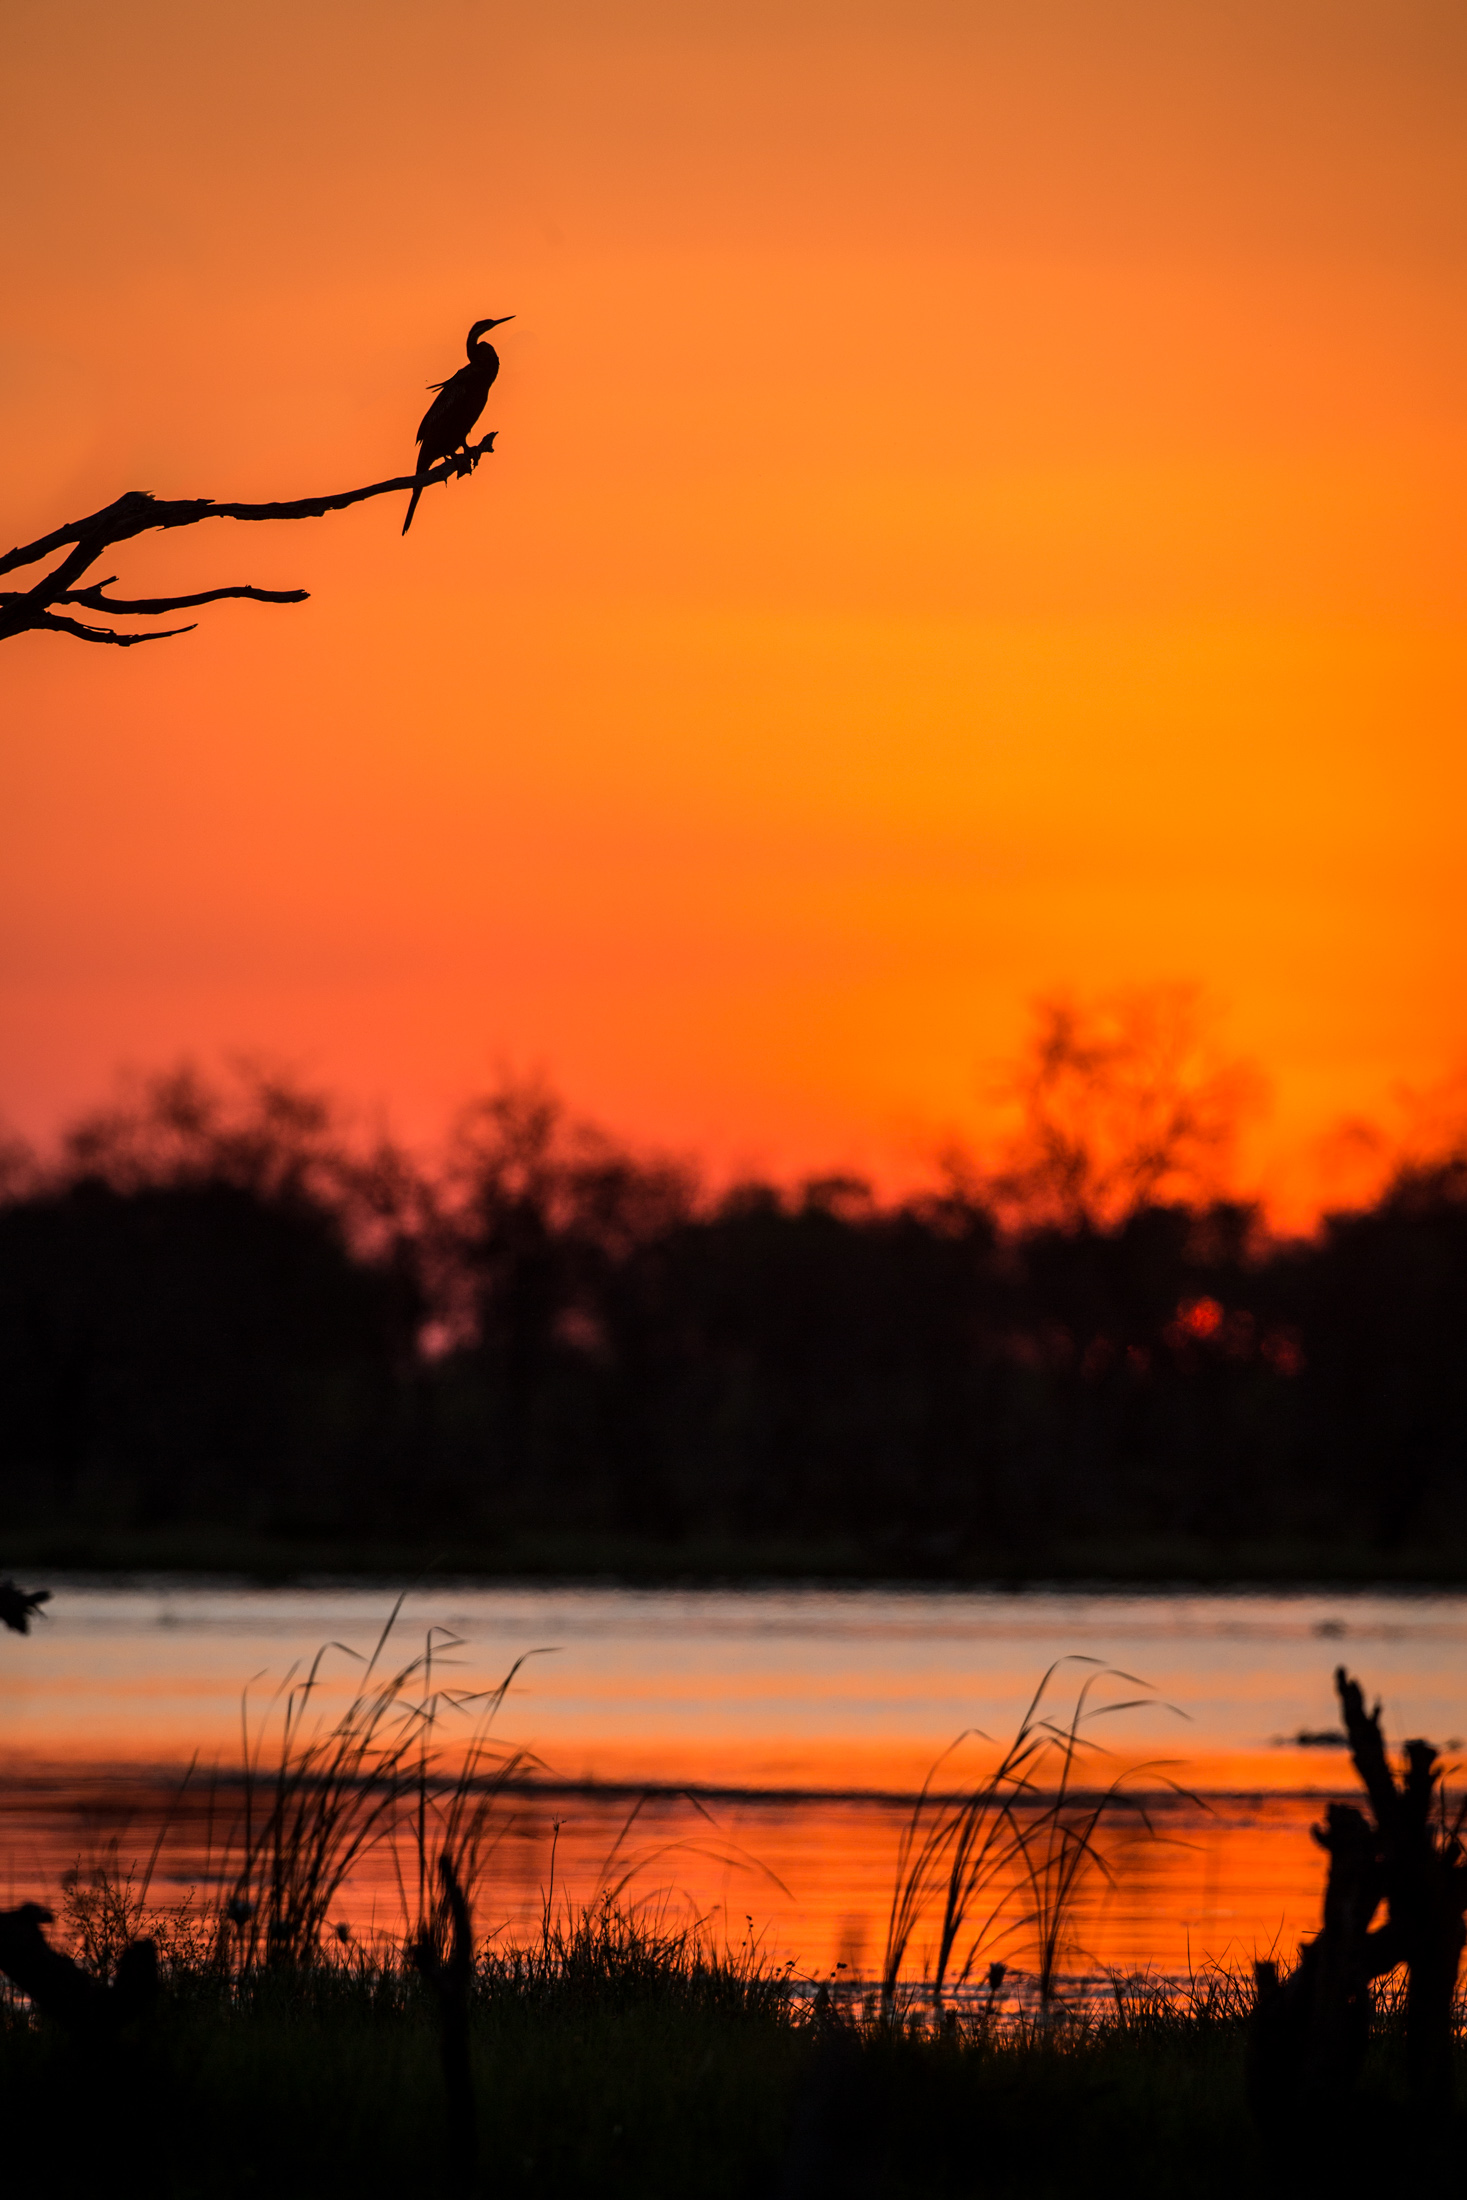 botswana is known for okavango image